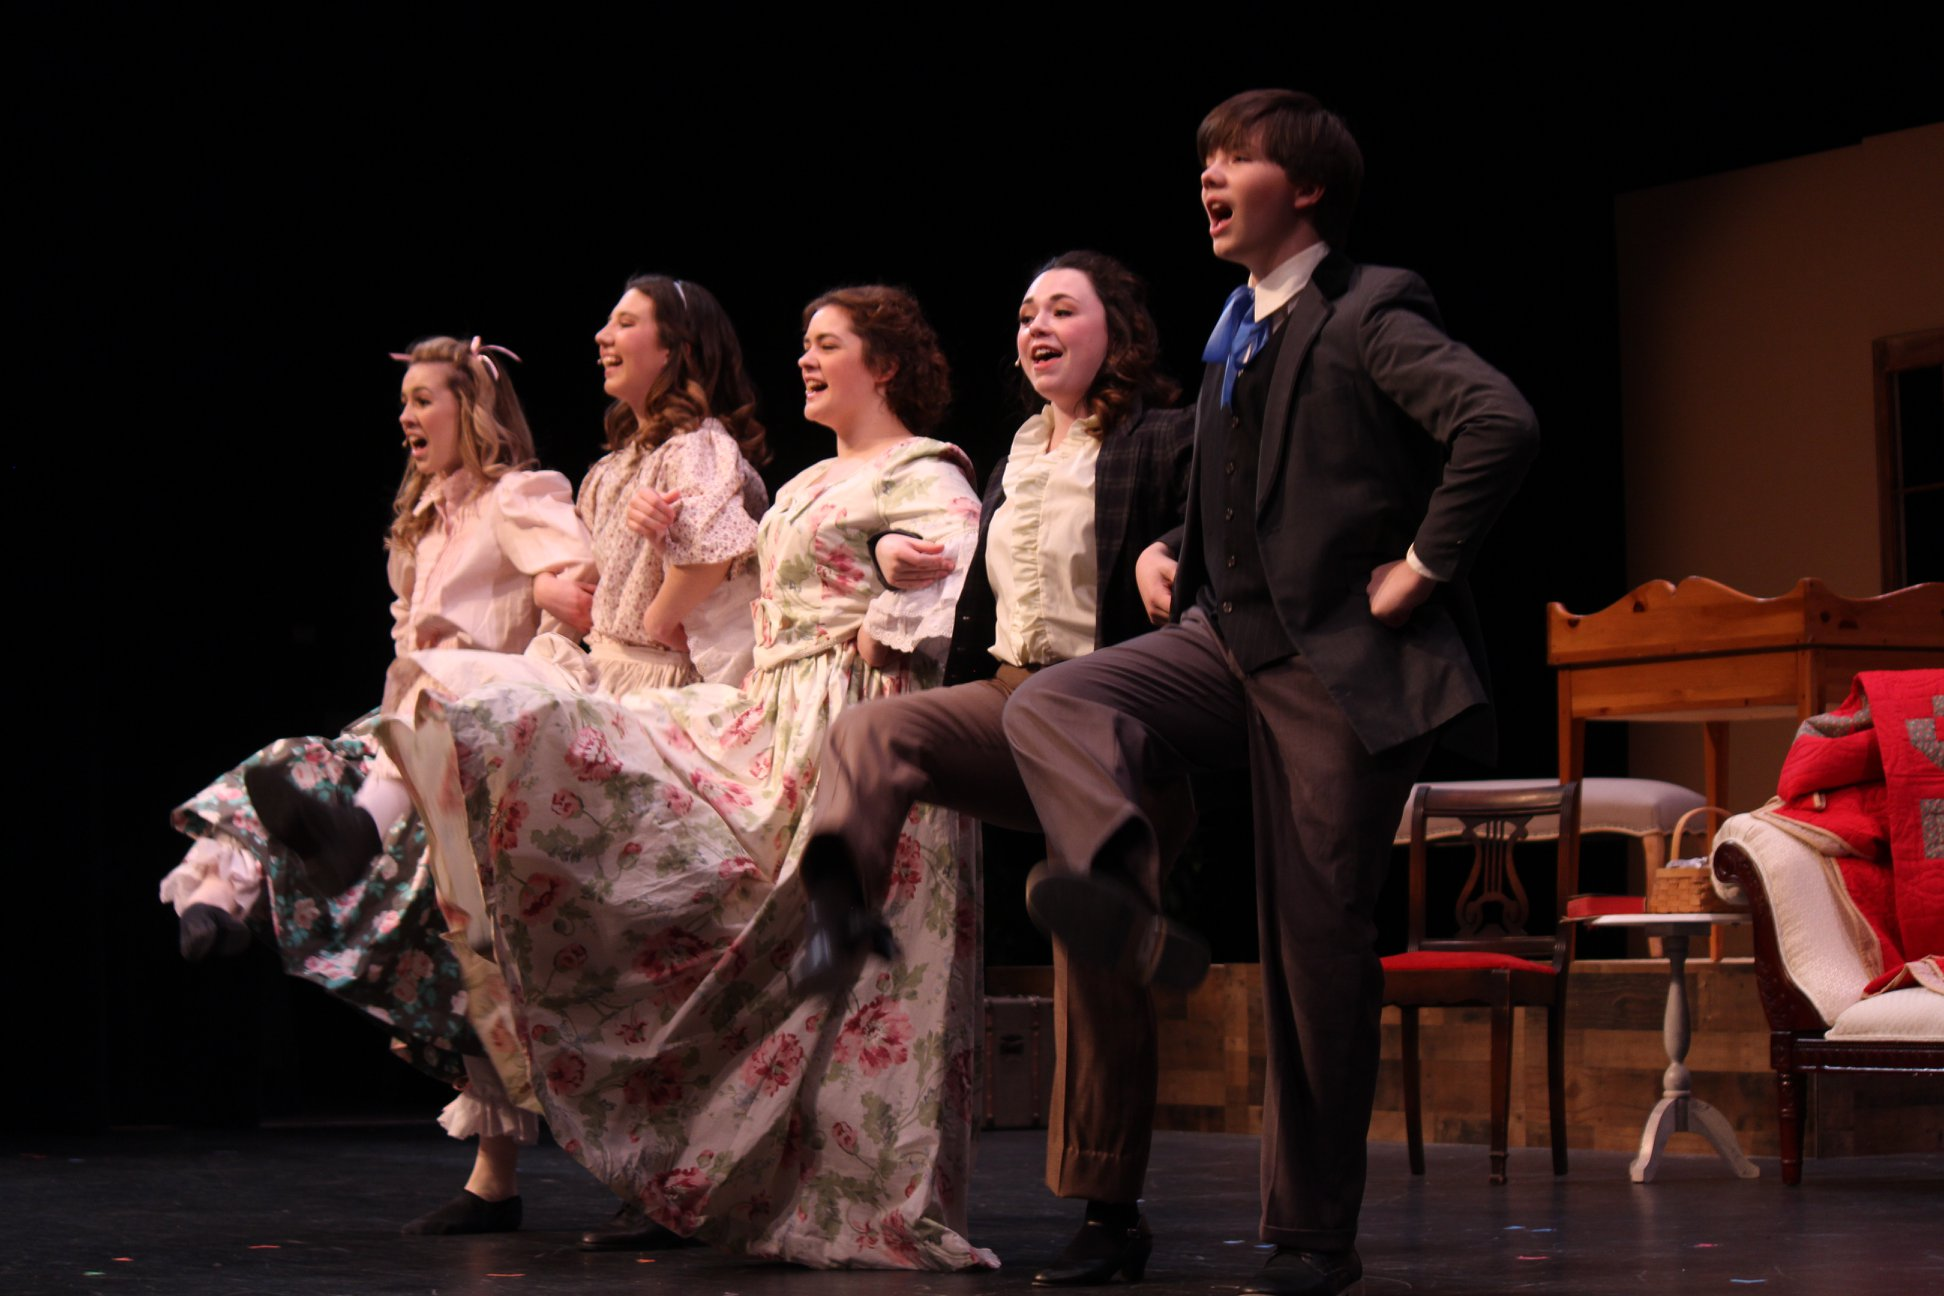 """Five for all forever!"" Left to Right: Sidney May as Amy, Deanta Saunders as Beth, Lindsey Smith as Meg, Ashlyn Lewis as Jo, and Zaden Scheer as Laurie.  Photo Courtesy of Sean Caldwell."